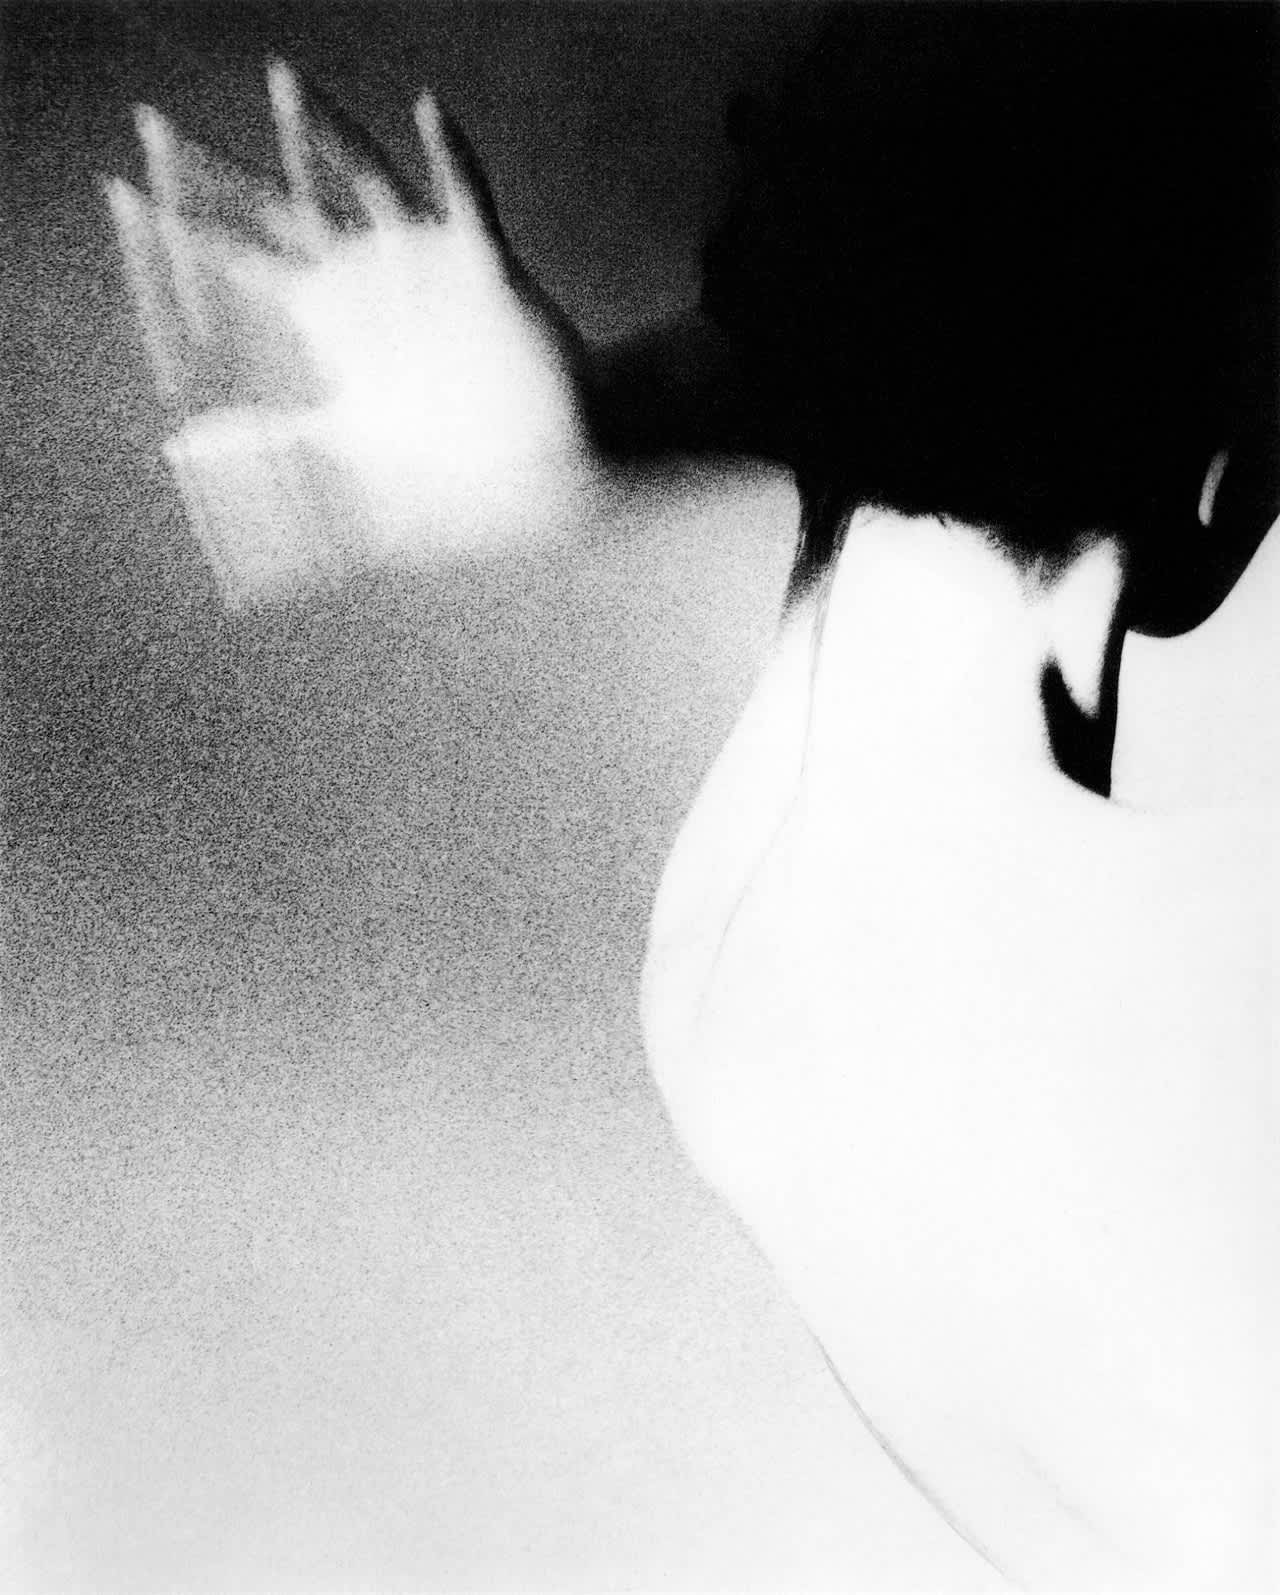 Lillian Bassman, Barbara Mullen, New York, circa 1950